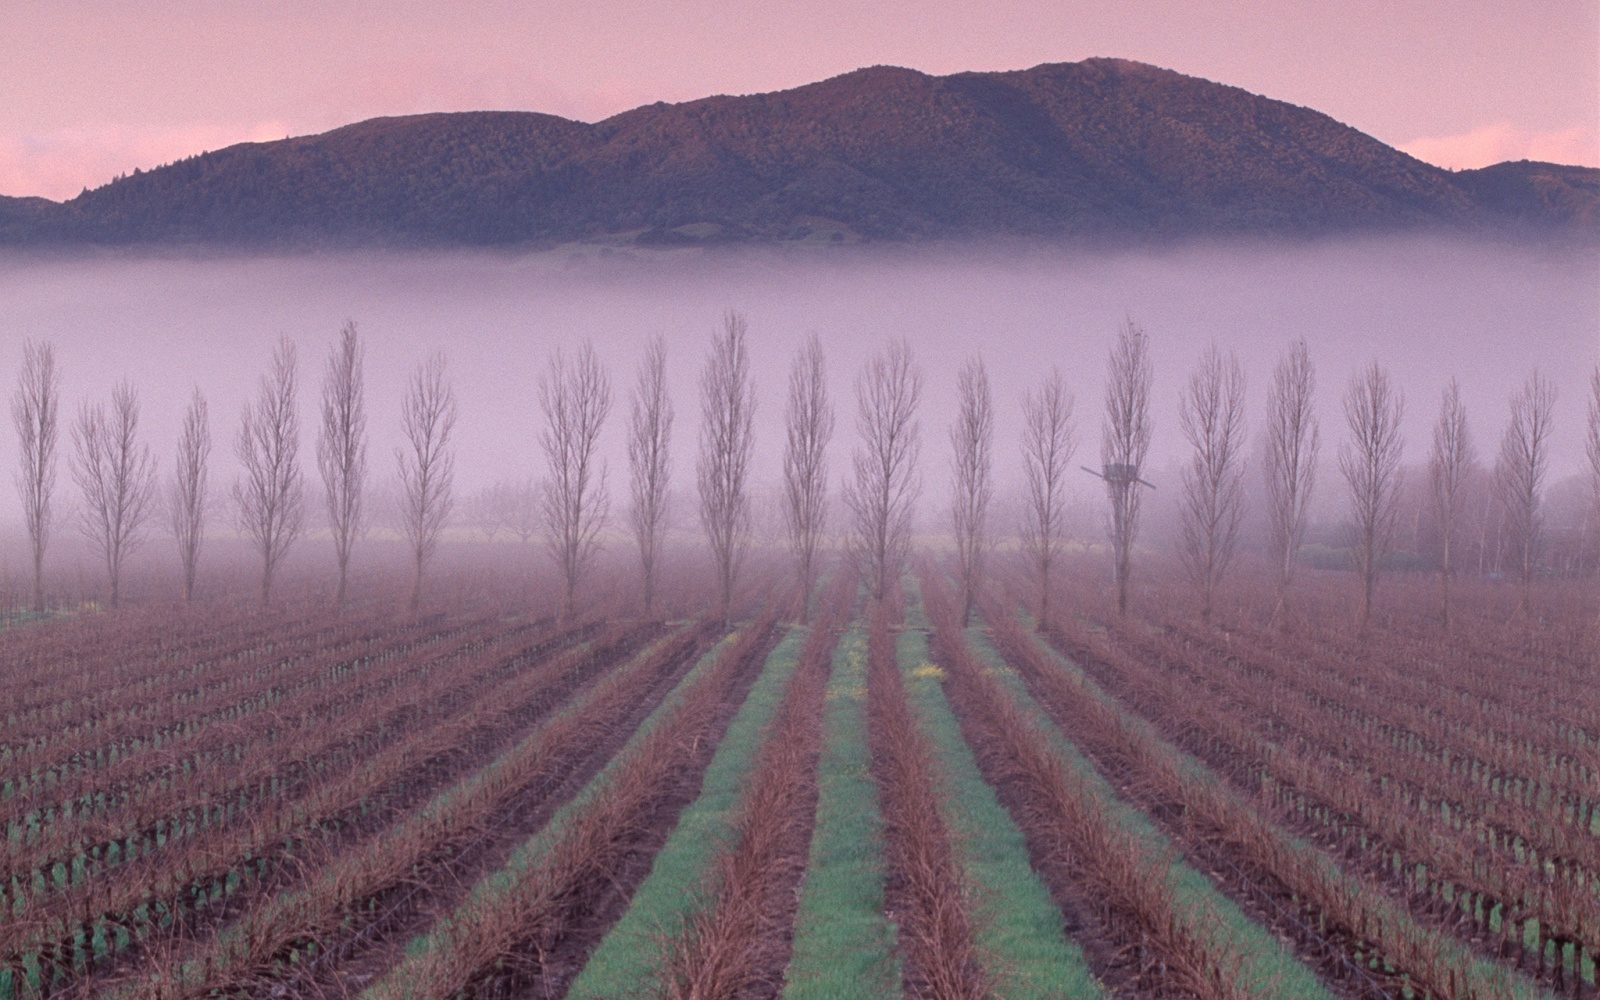 The Napa and Sonoma Valleys new year's eve destinations